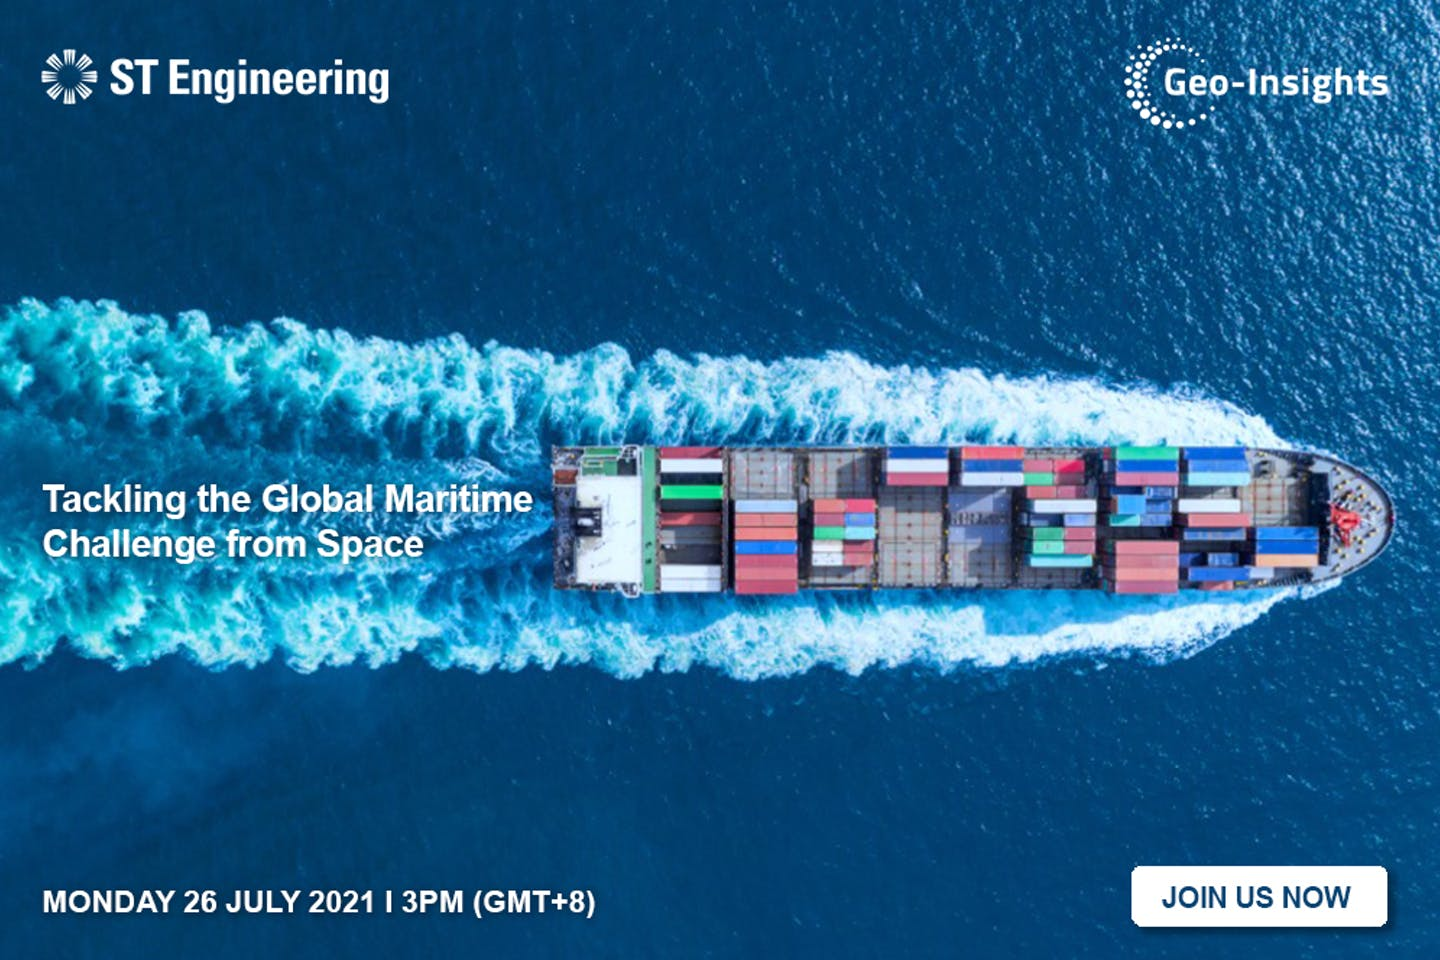 Tackling the global maritime challenge from space